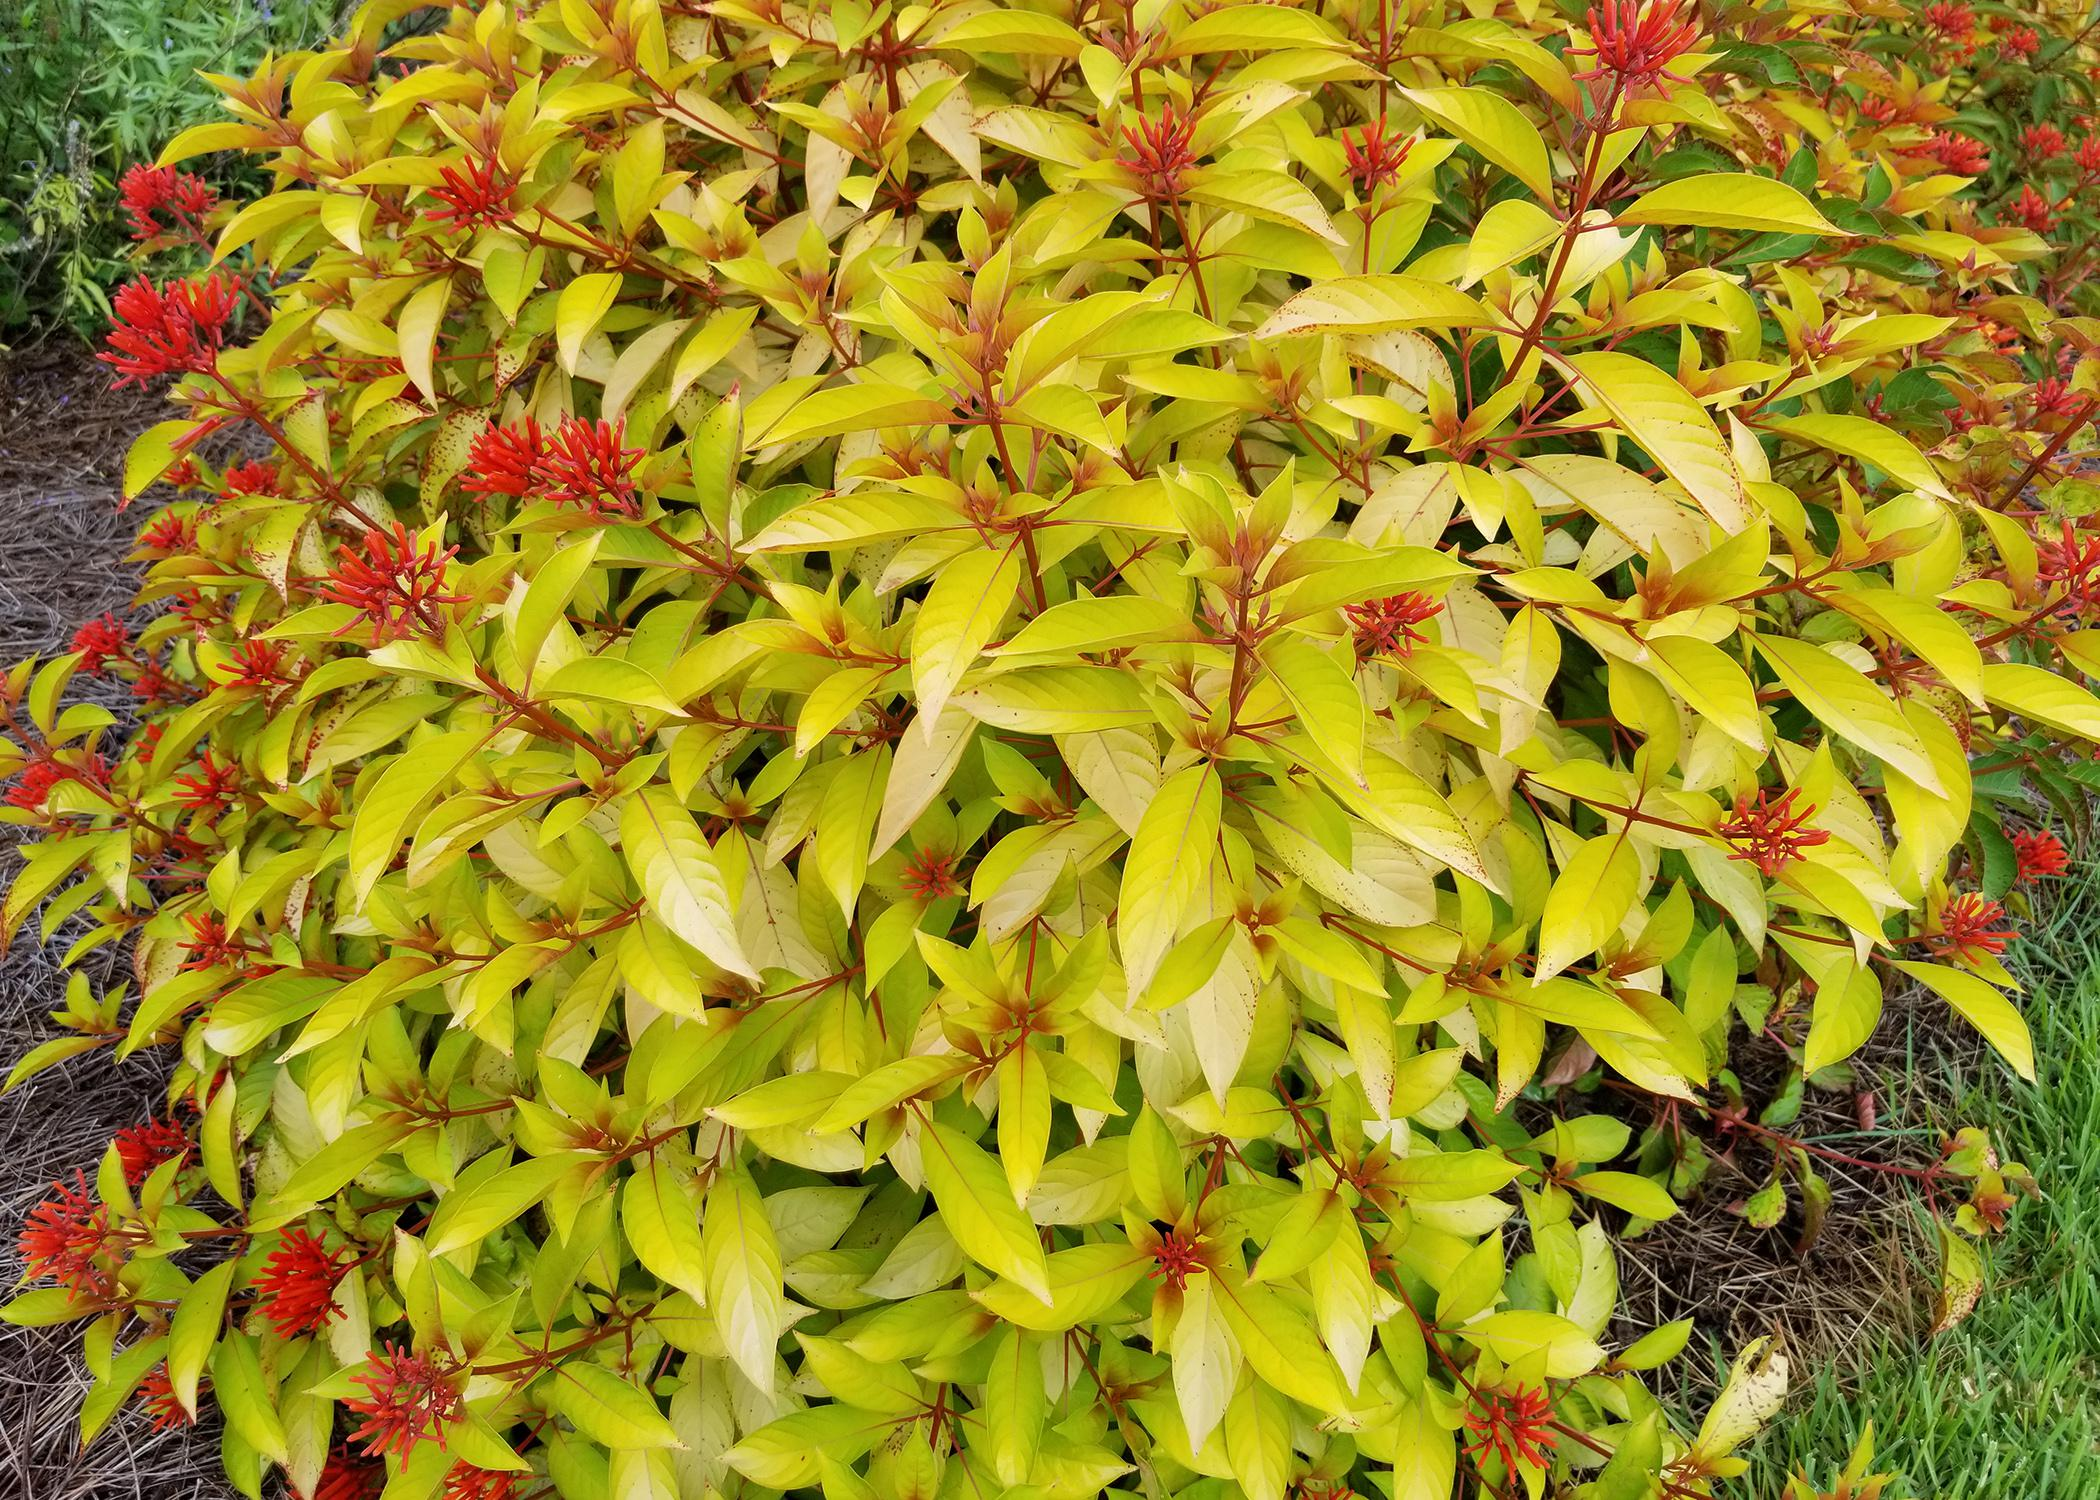 A bright-yellow bush has red flowers stalks.